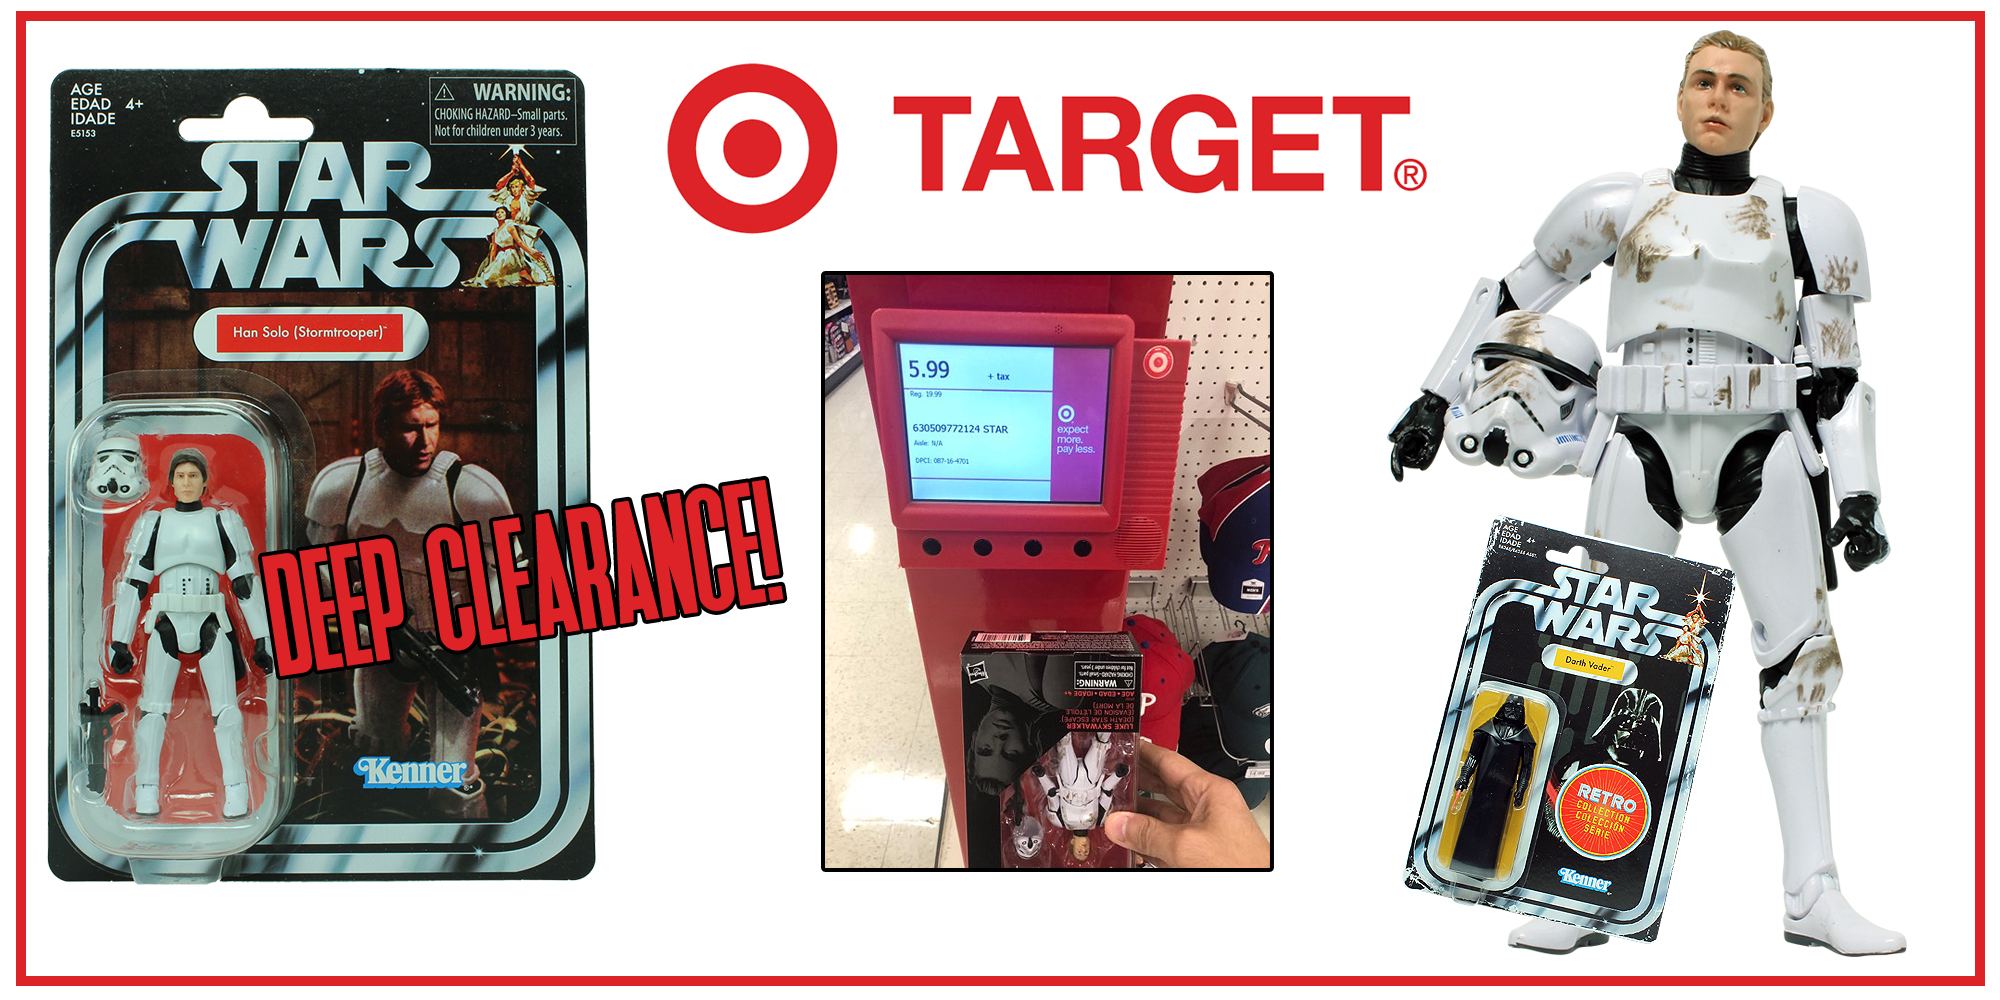 Star Wars Clearance at Target stores